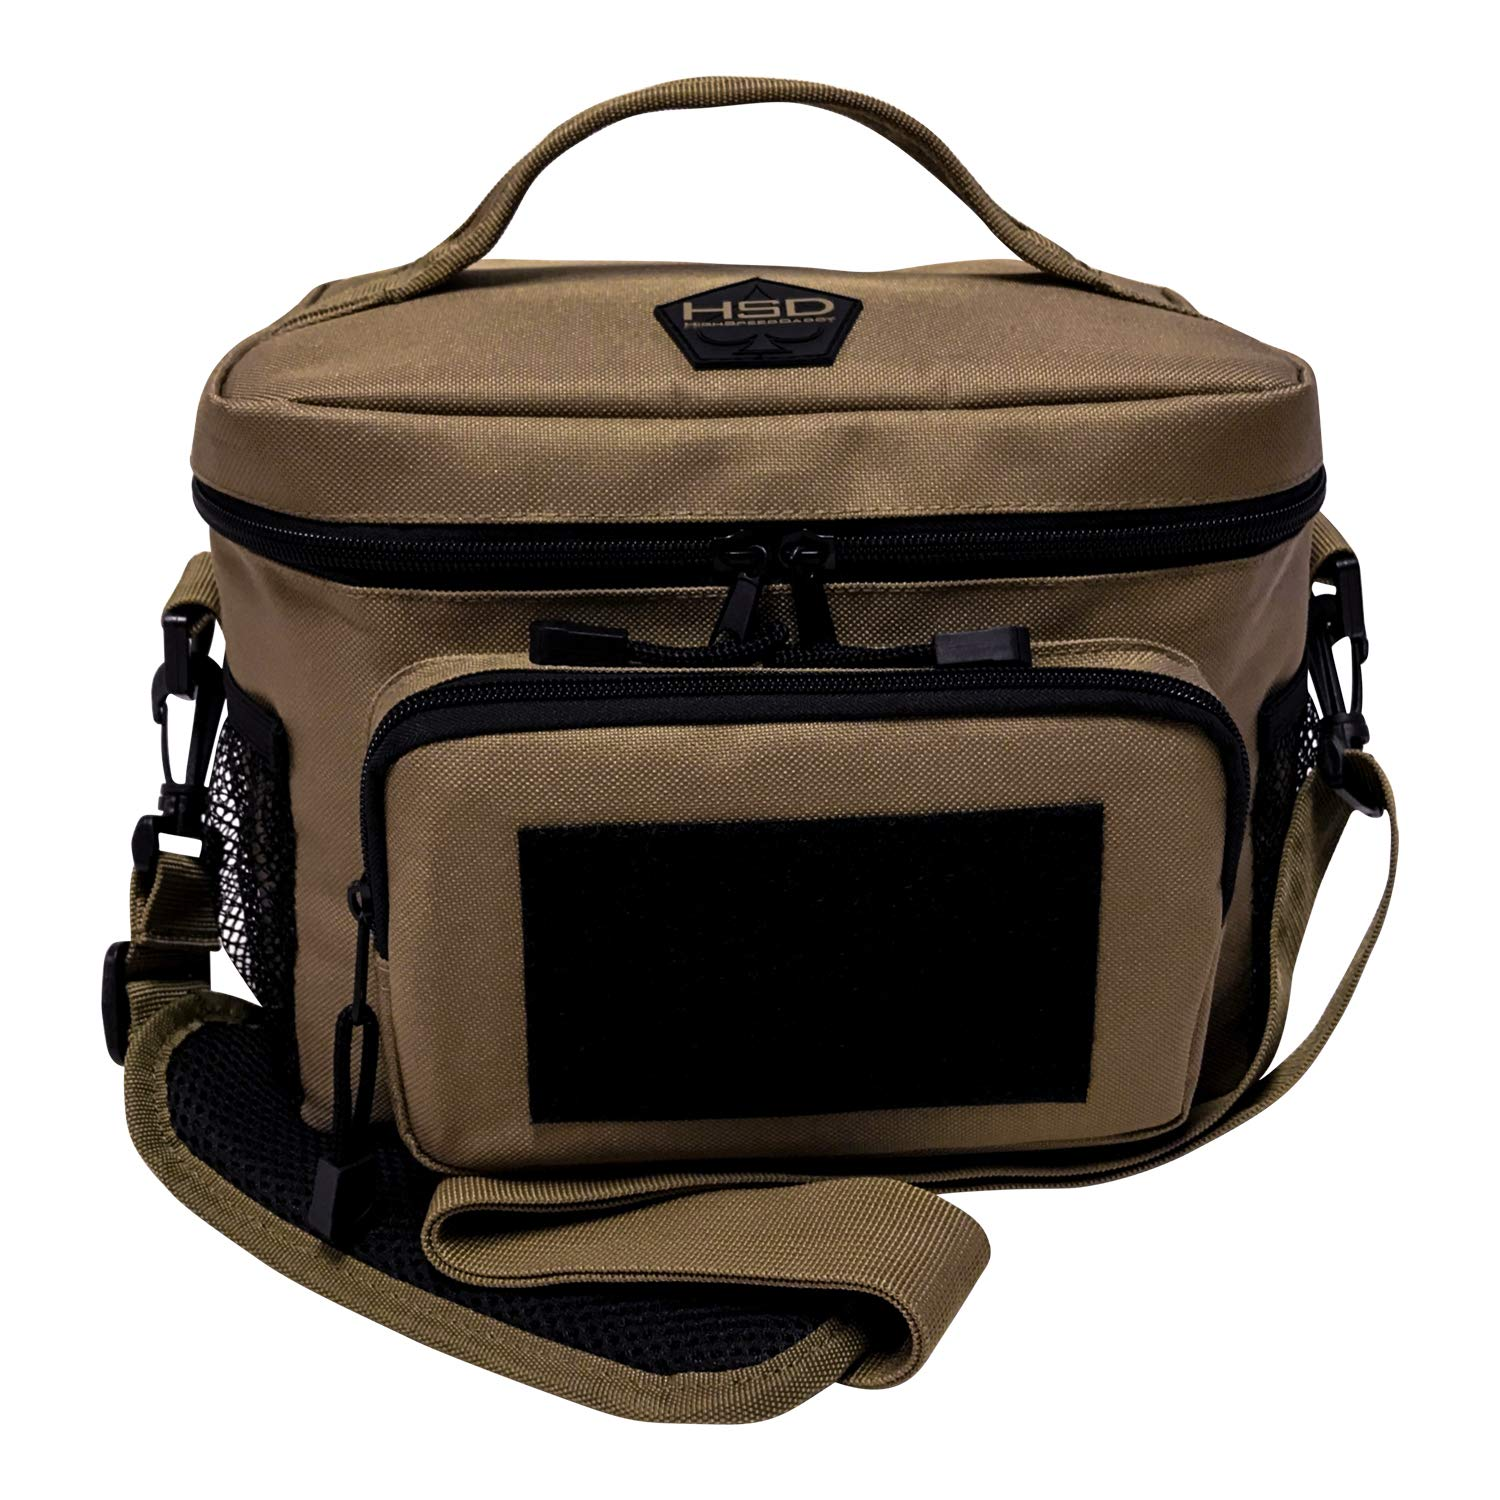 HSD Lunch Bag, Insulated Cooler, Thermal Lunch Box Tote with MOLLE/PALS Webbing, Adjustable Padded Shoulder Strap, for Tactical Men Women Adults and Boys Girls Kids (Coyote Brown)